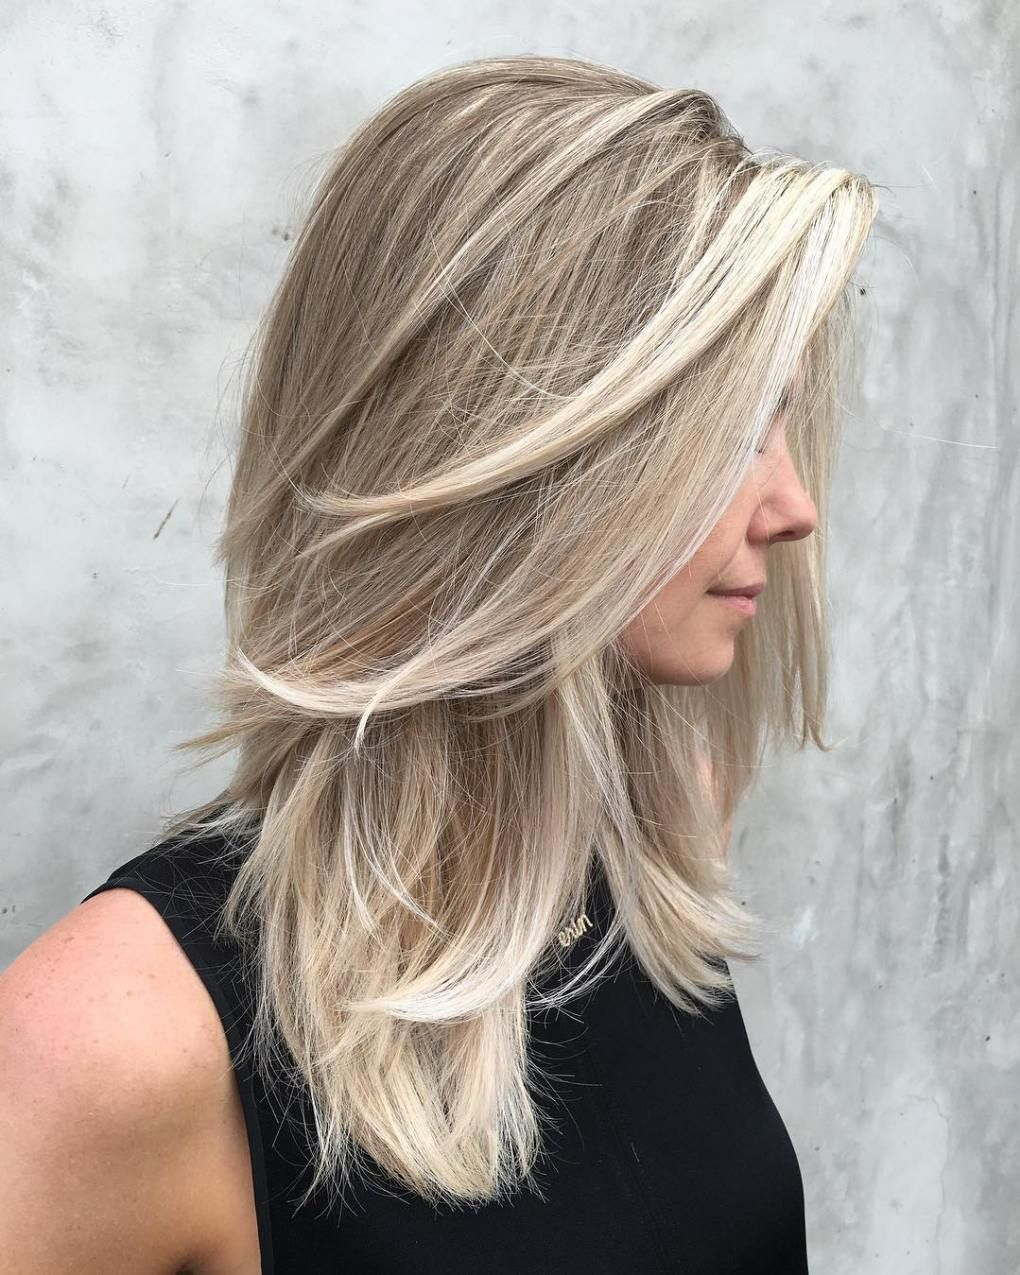 20 beautiful blonde hairstyles to play around with | hair in